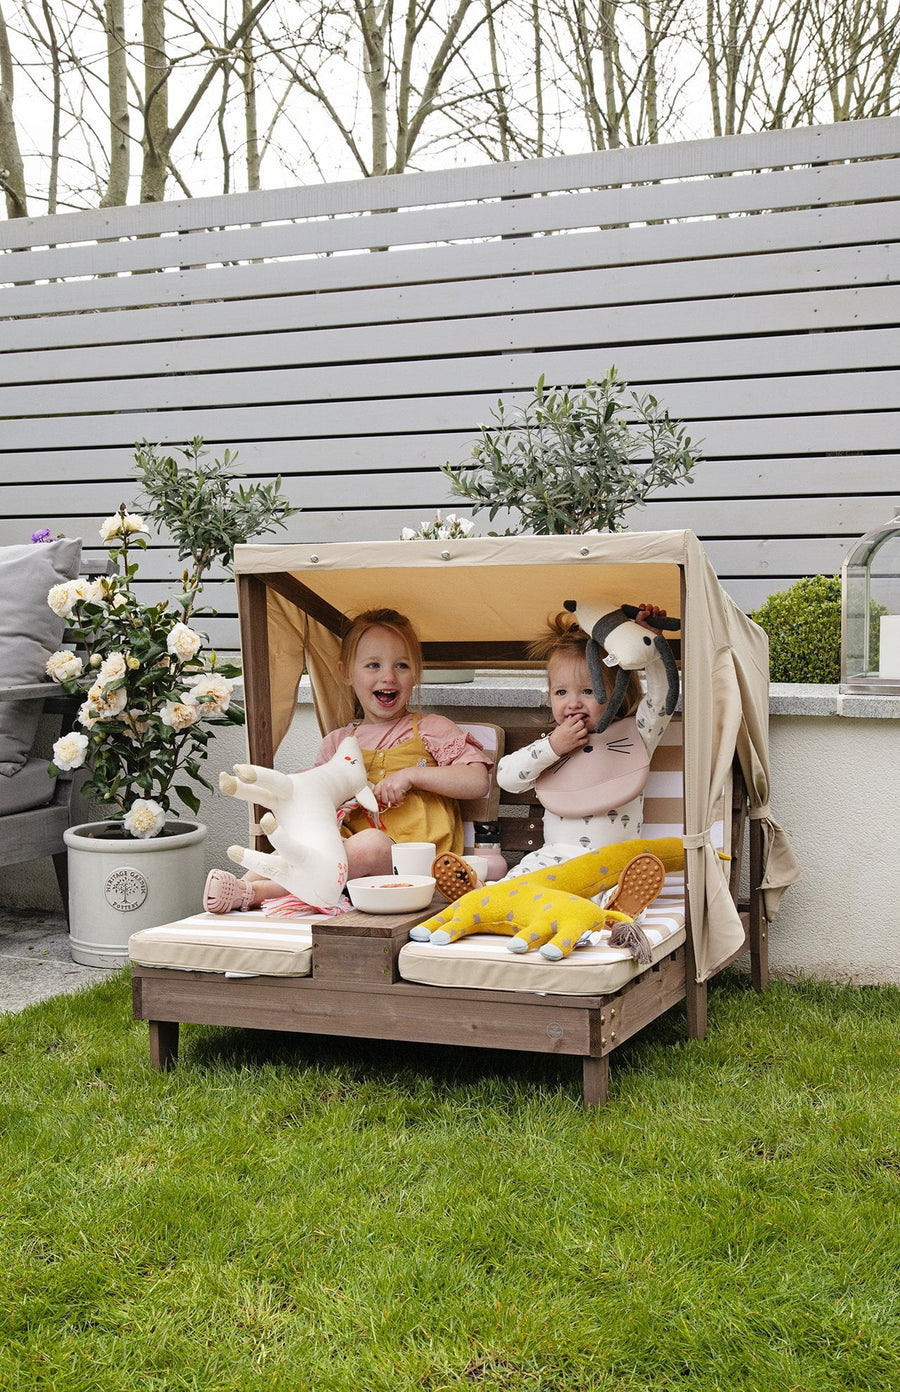 KidKraft Double Chaise Lounge - Oatmeal